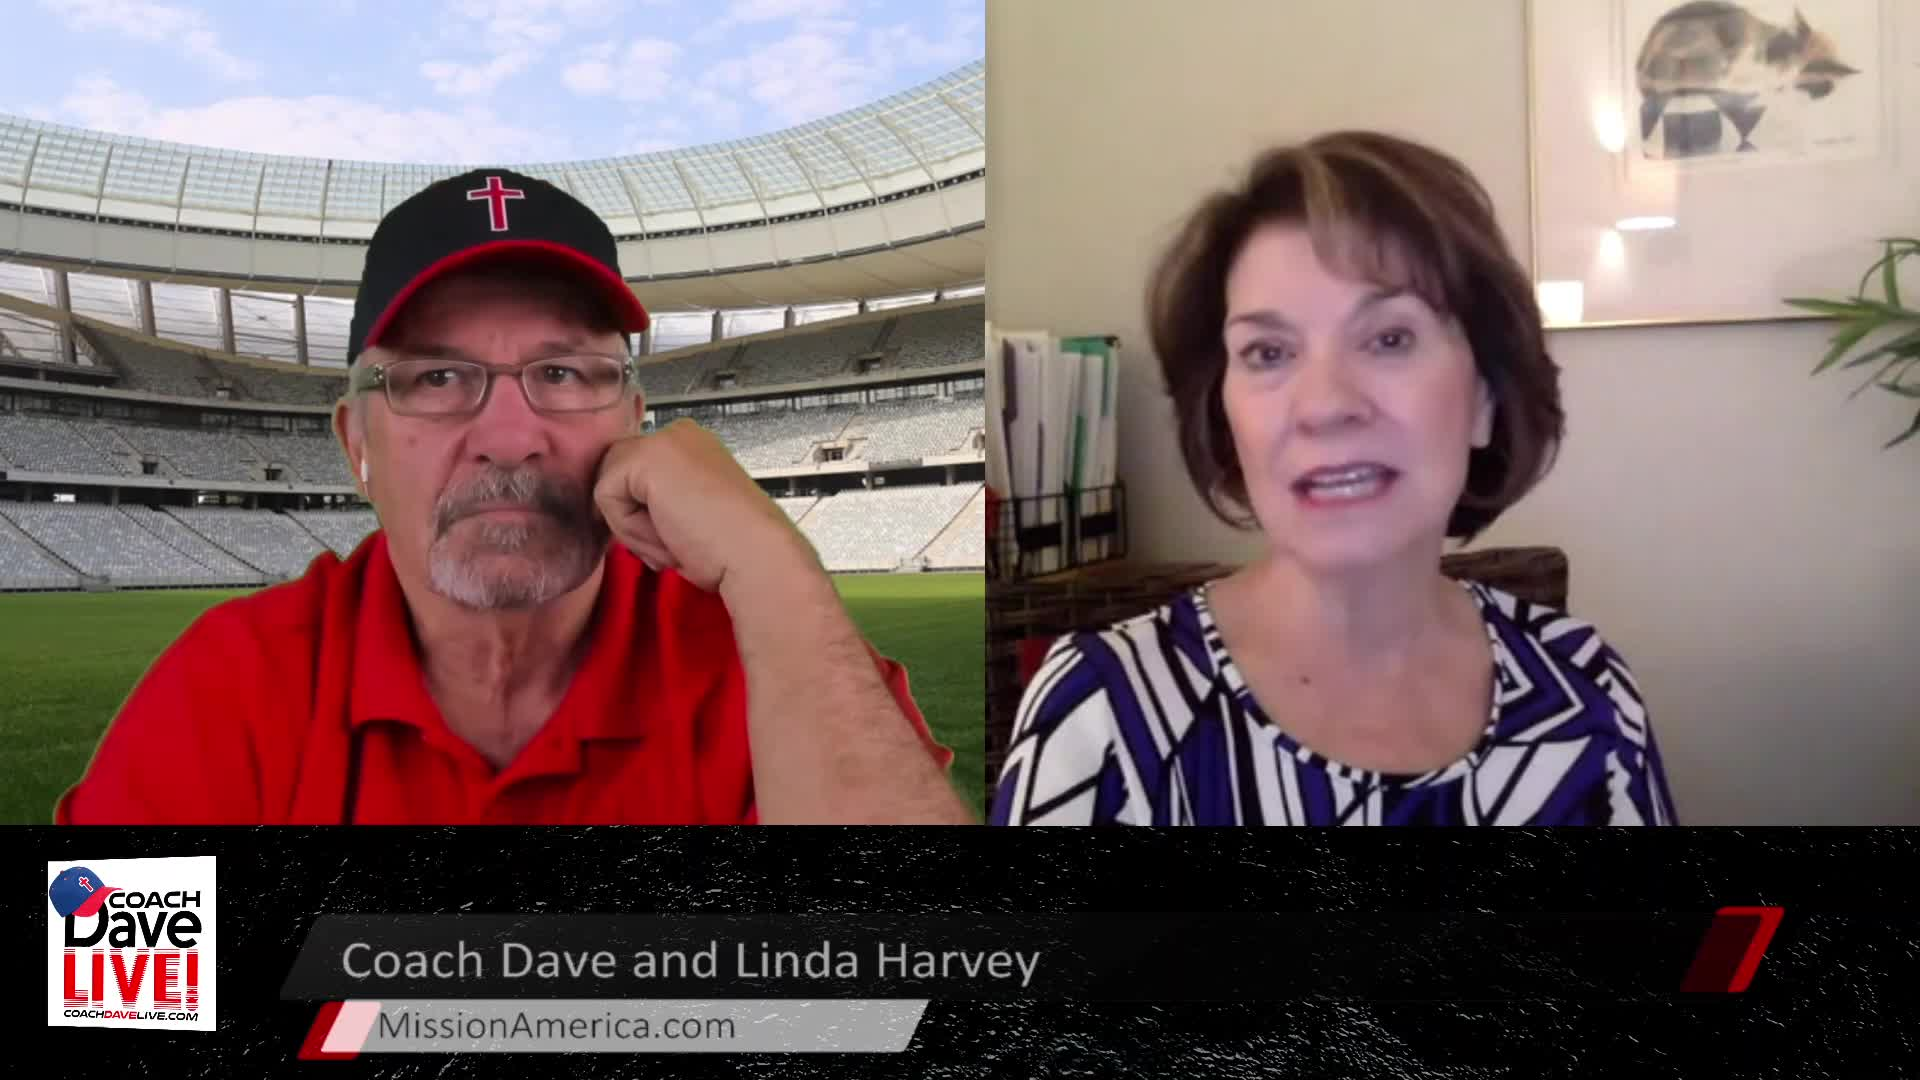 Coach Dave LIVE   4-7-2021   SPECIAL GUEST LINDA HARVEY OF MISSION AMERICA - AUDIO ONLY